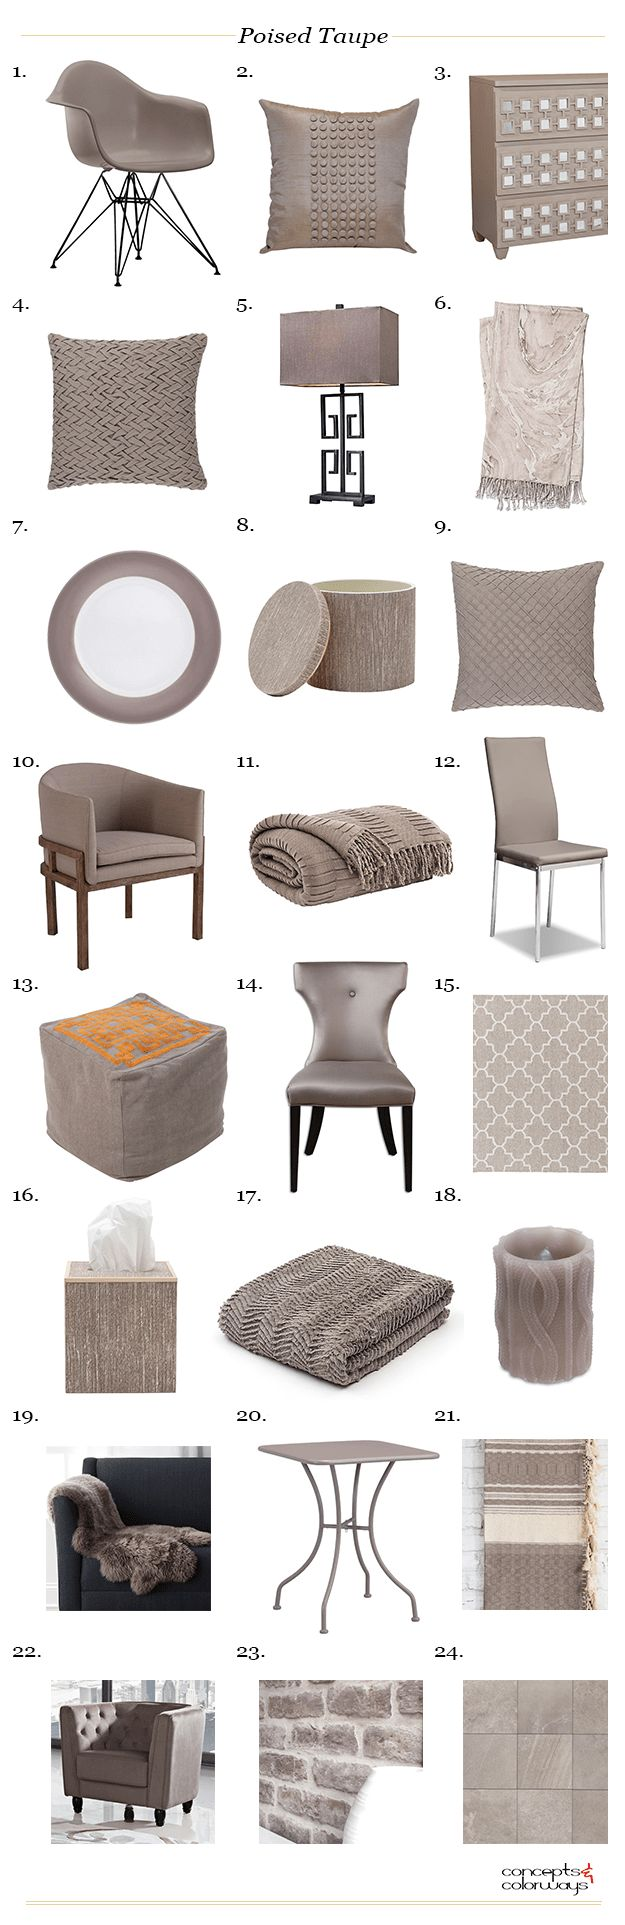 poised taupe interior design products